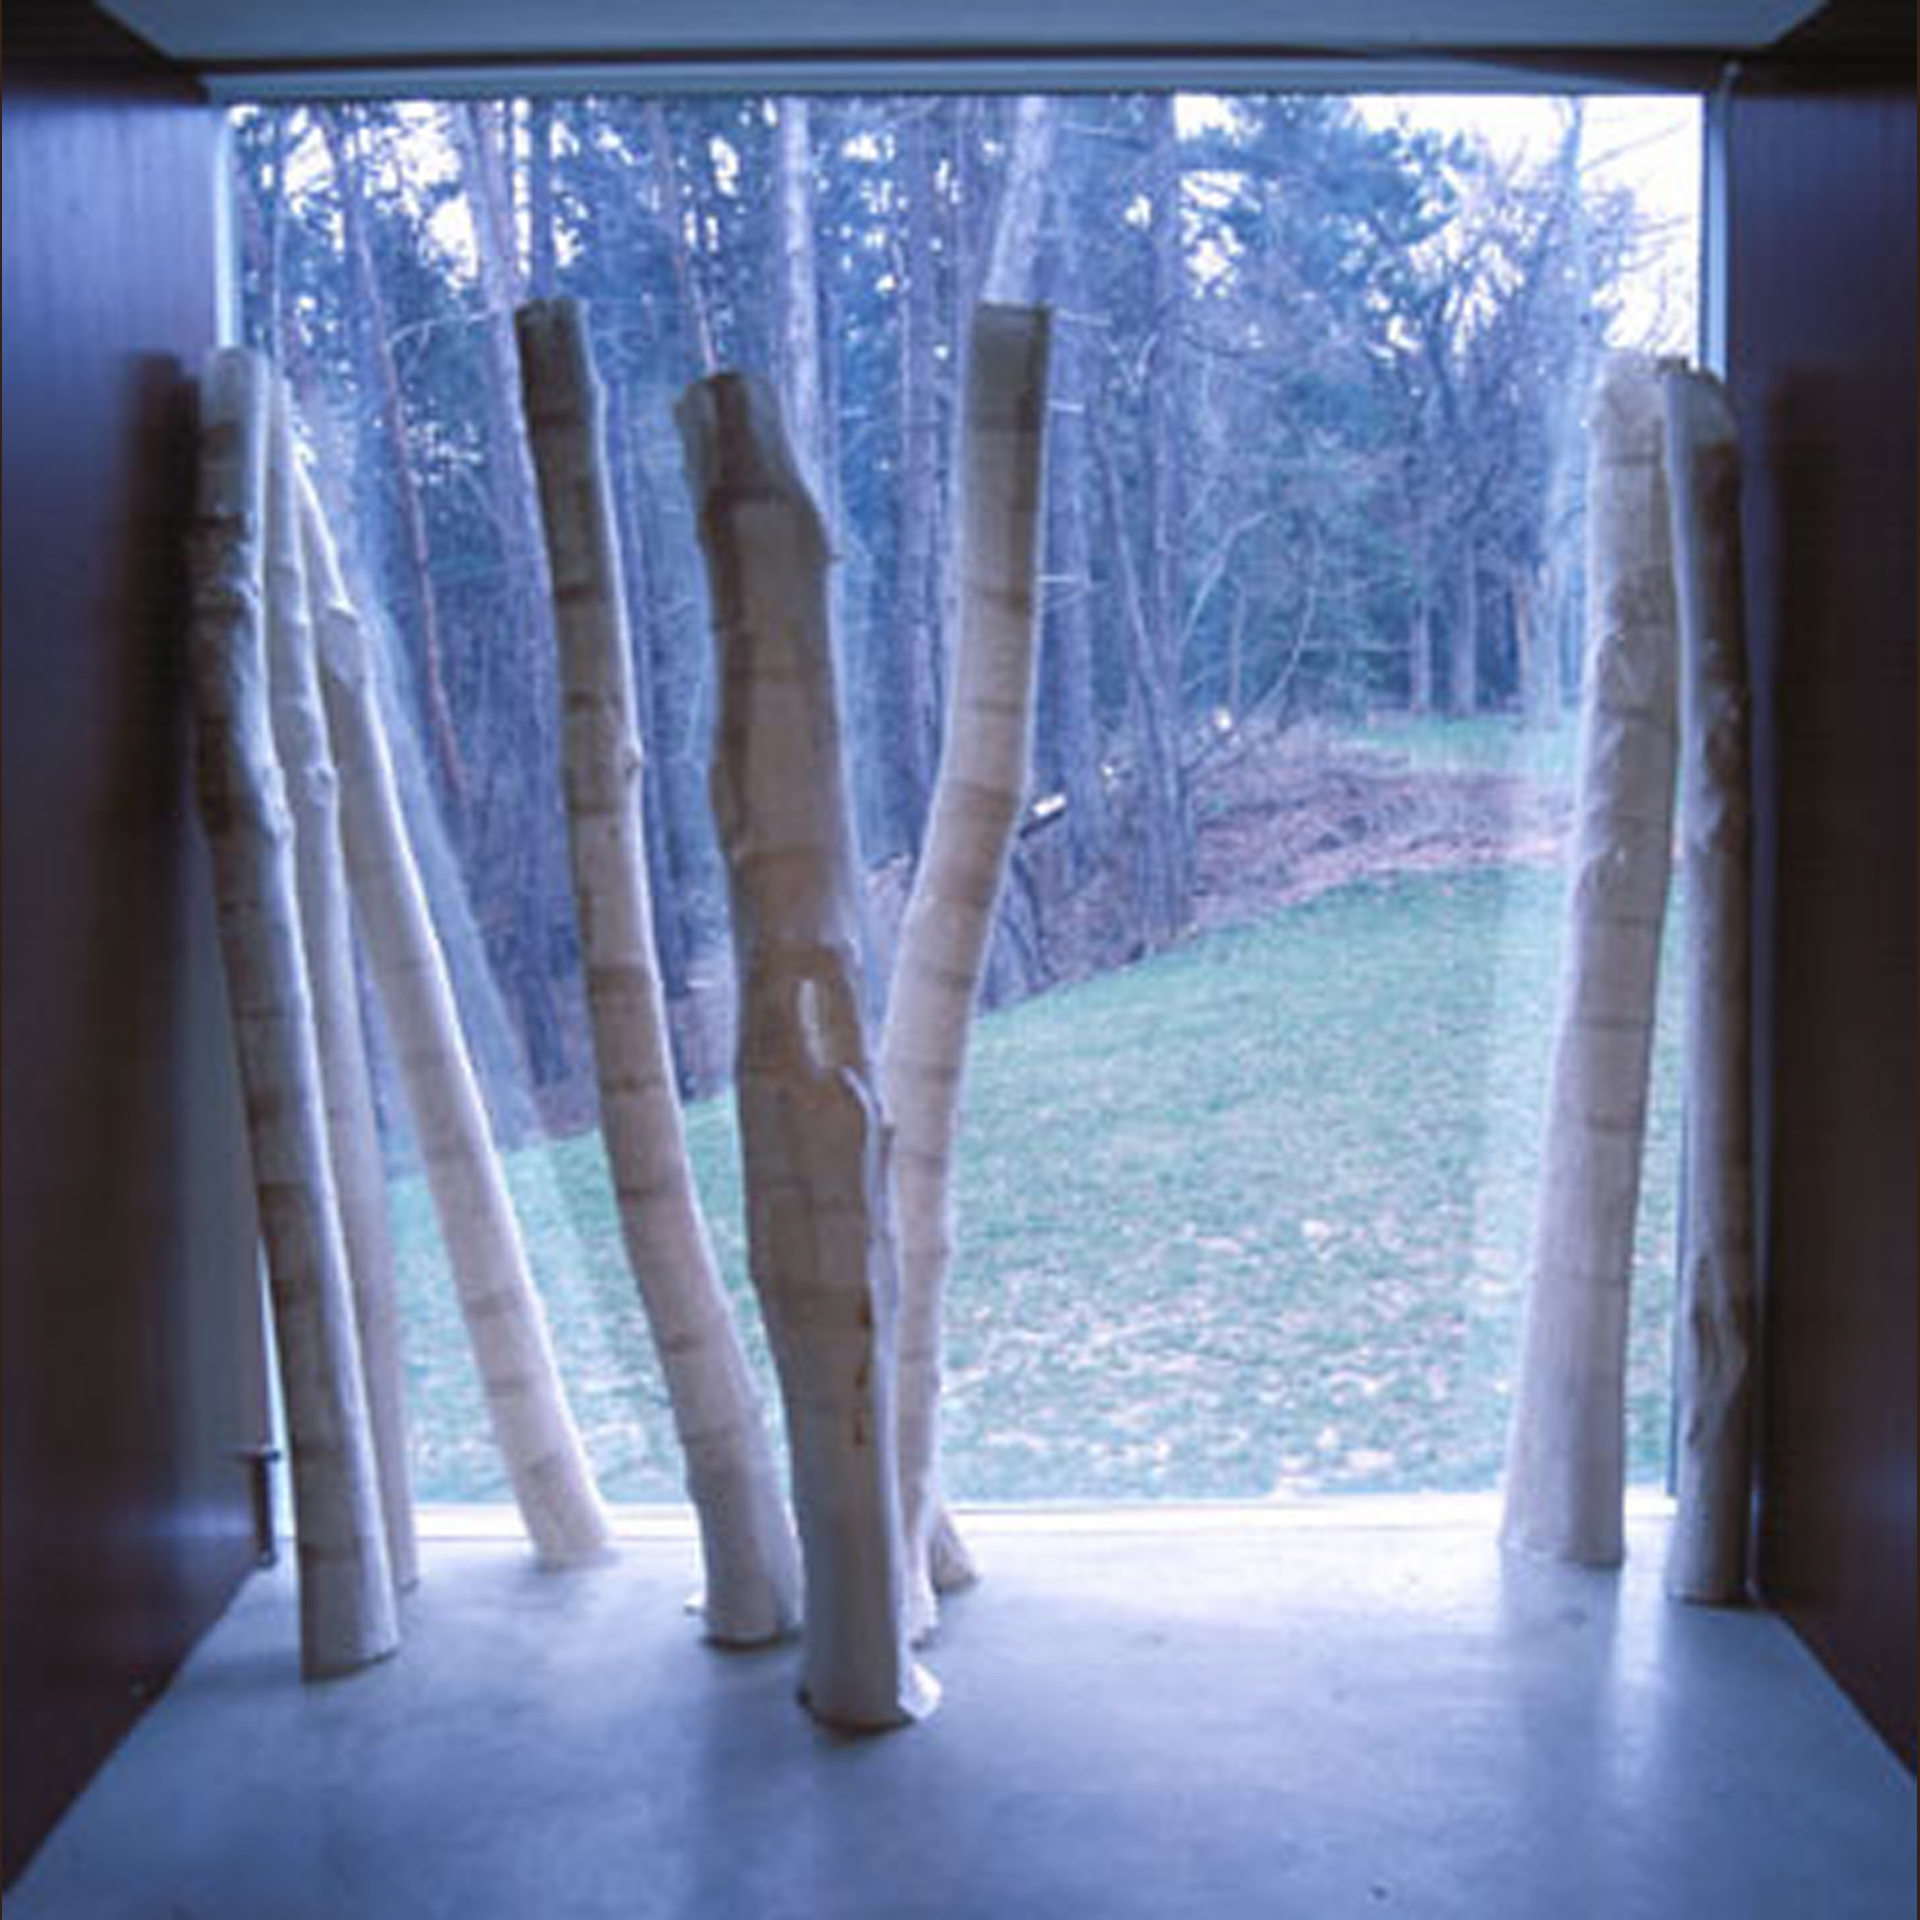 Remembering Trees. 2004. Handmade paper, waxed linen. -